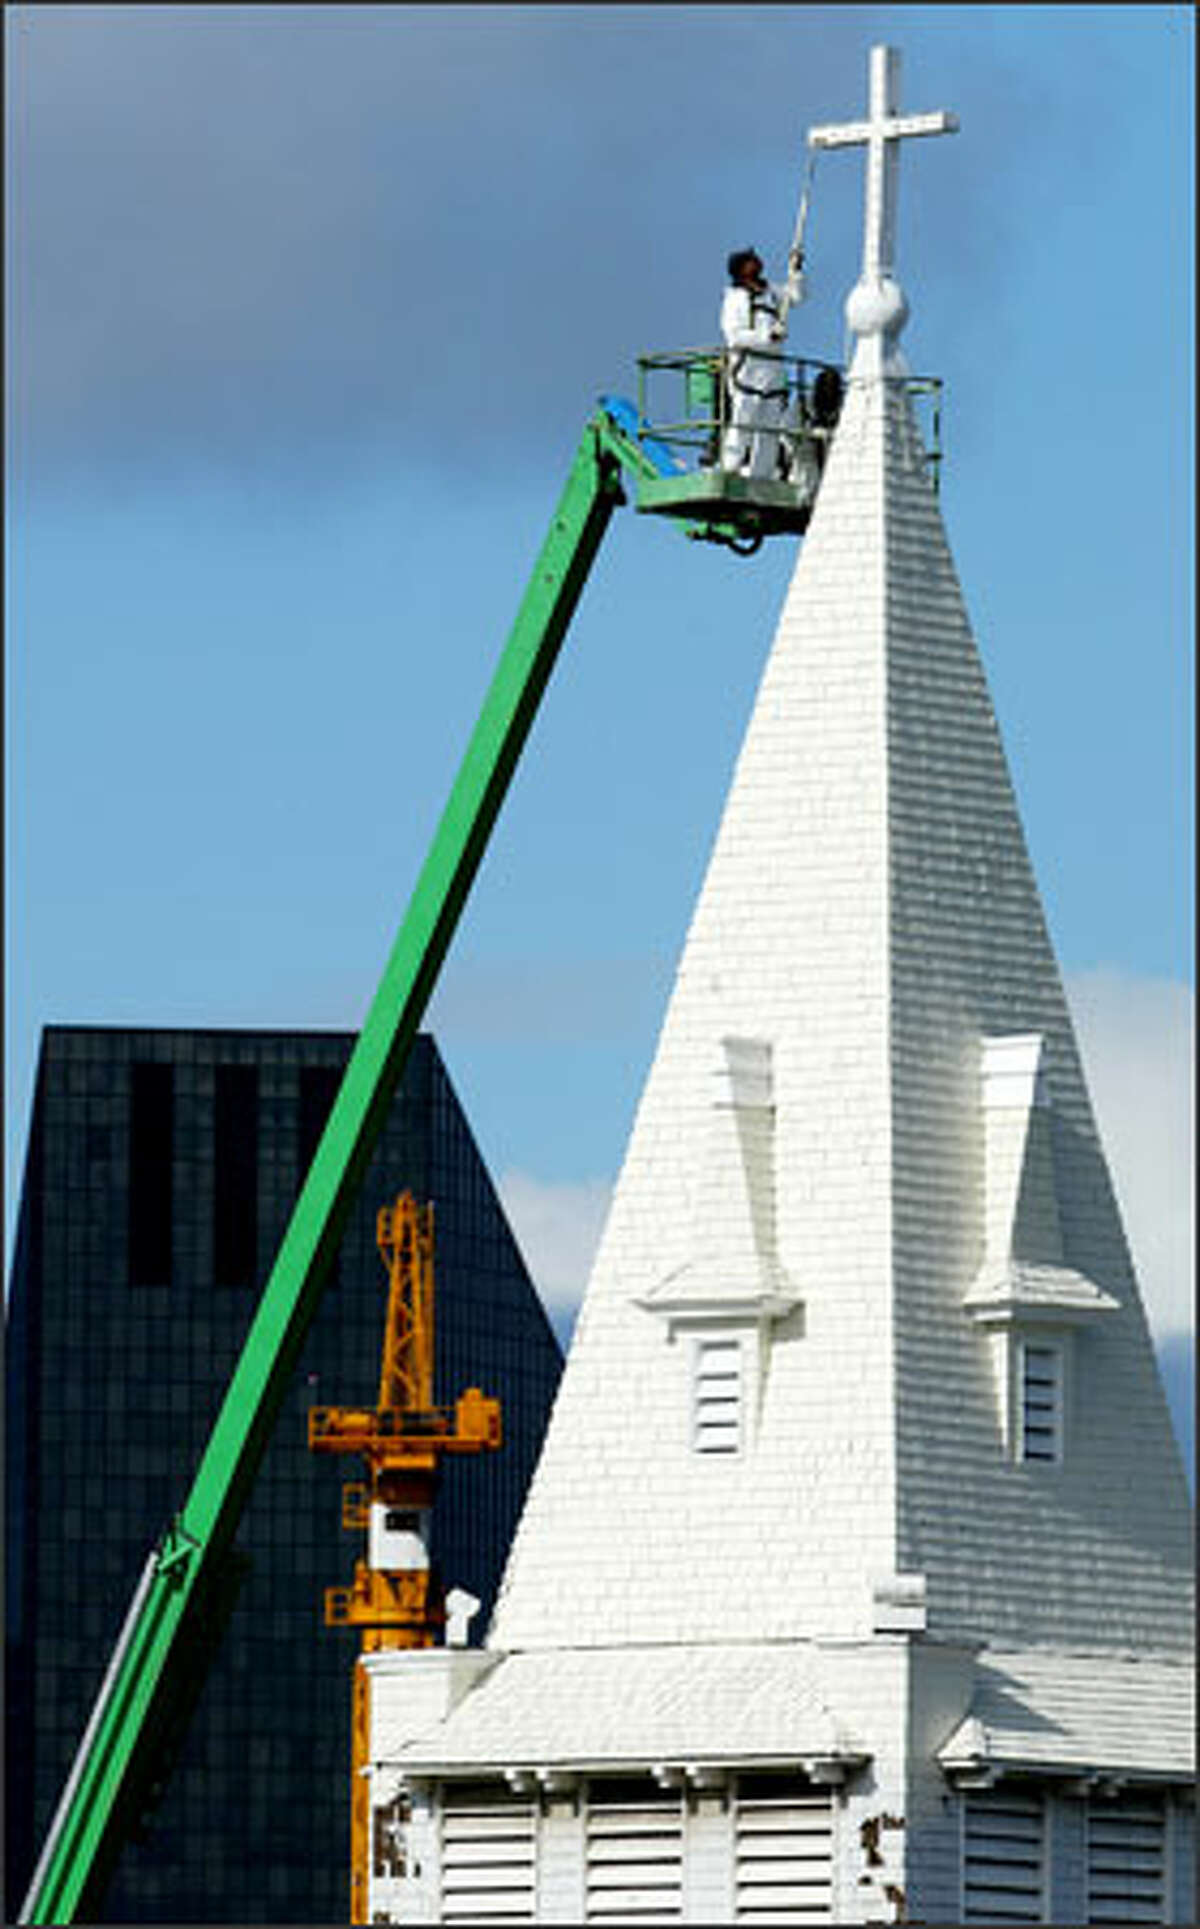 The historic Immanuel Lutheran Church, founded in 1890, is being painted for the first time in 25 years. Contractors estimate the job at 1215 Thomas St. in Seattle will take 30 days. The painters began at the top, with Mel Bradford and Richard Turner painting the steeple. The steeple's top is 130 feet above ground. The church was originally built to serve the city's Norwegian population.